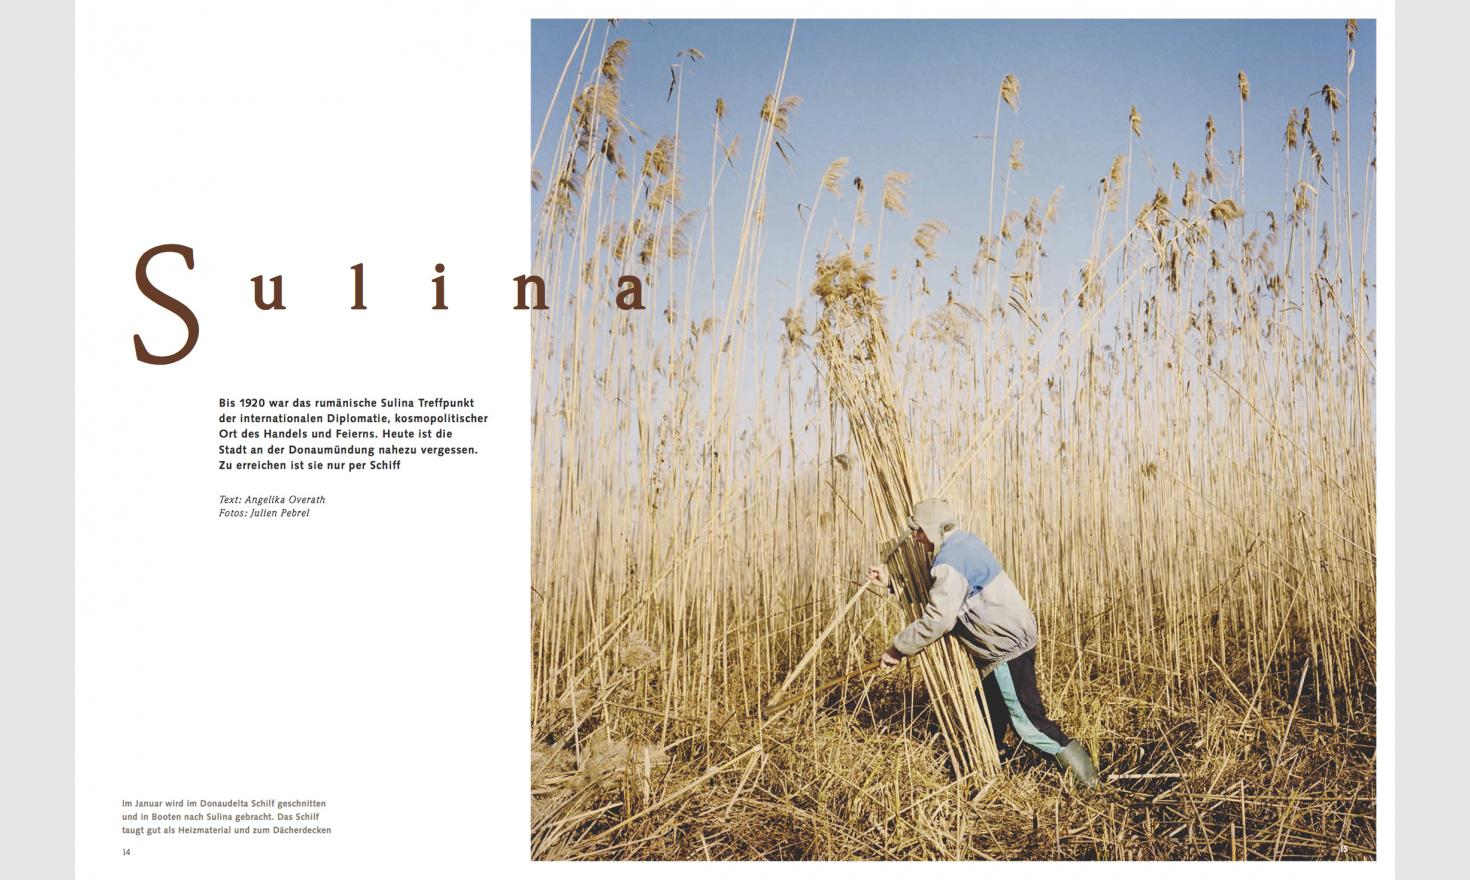 Mare, issue 121, april/may 2017 - Sulina